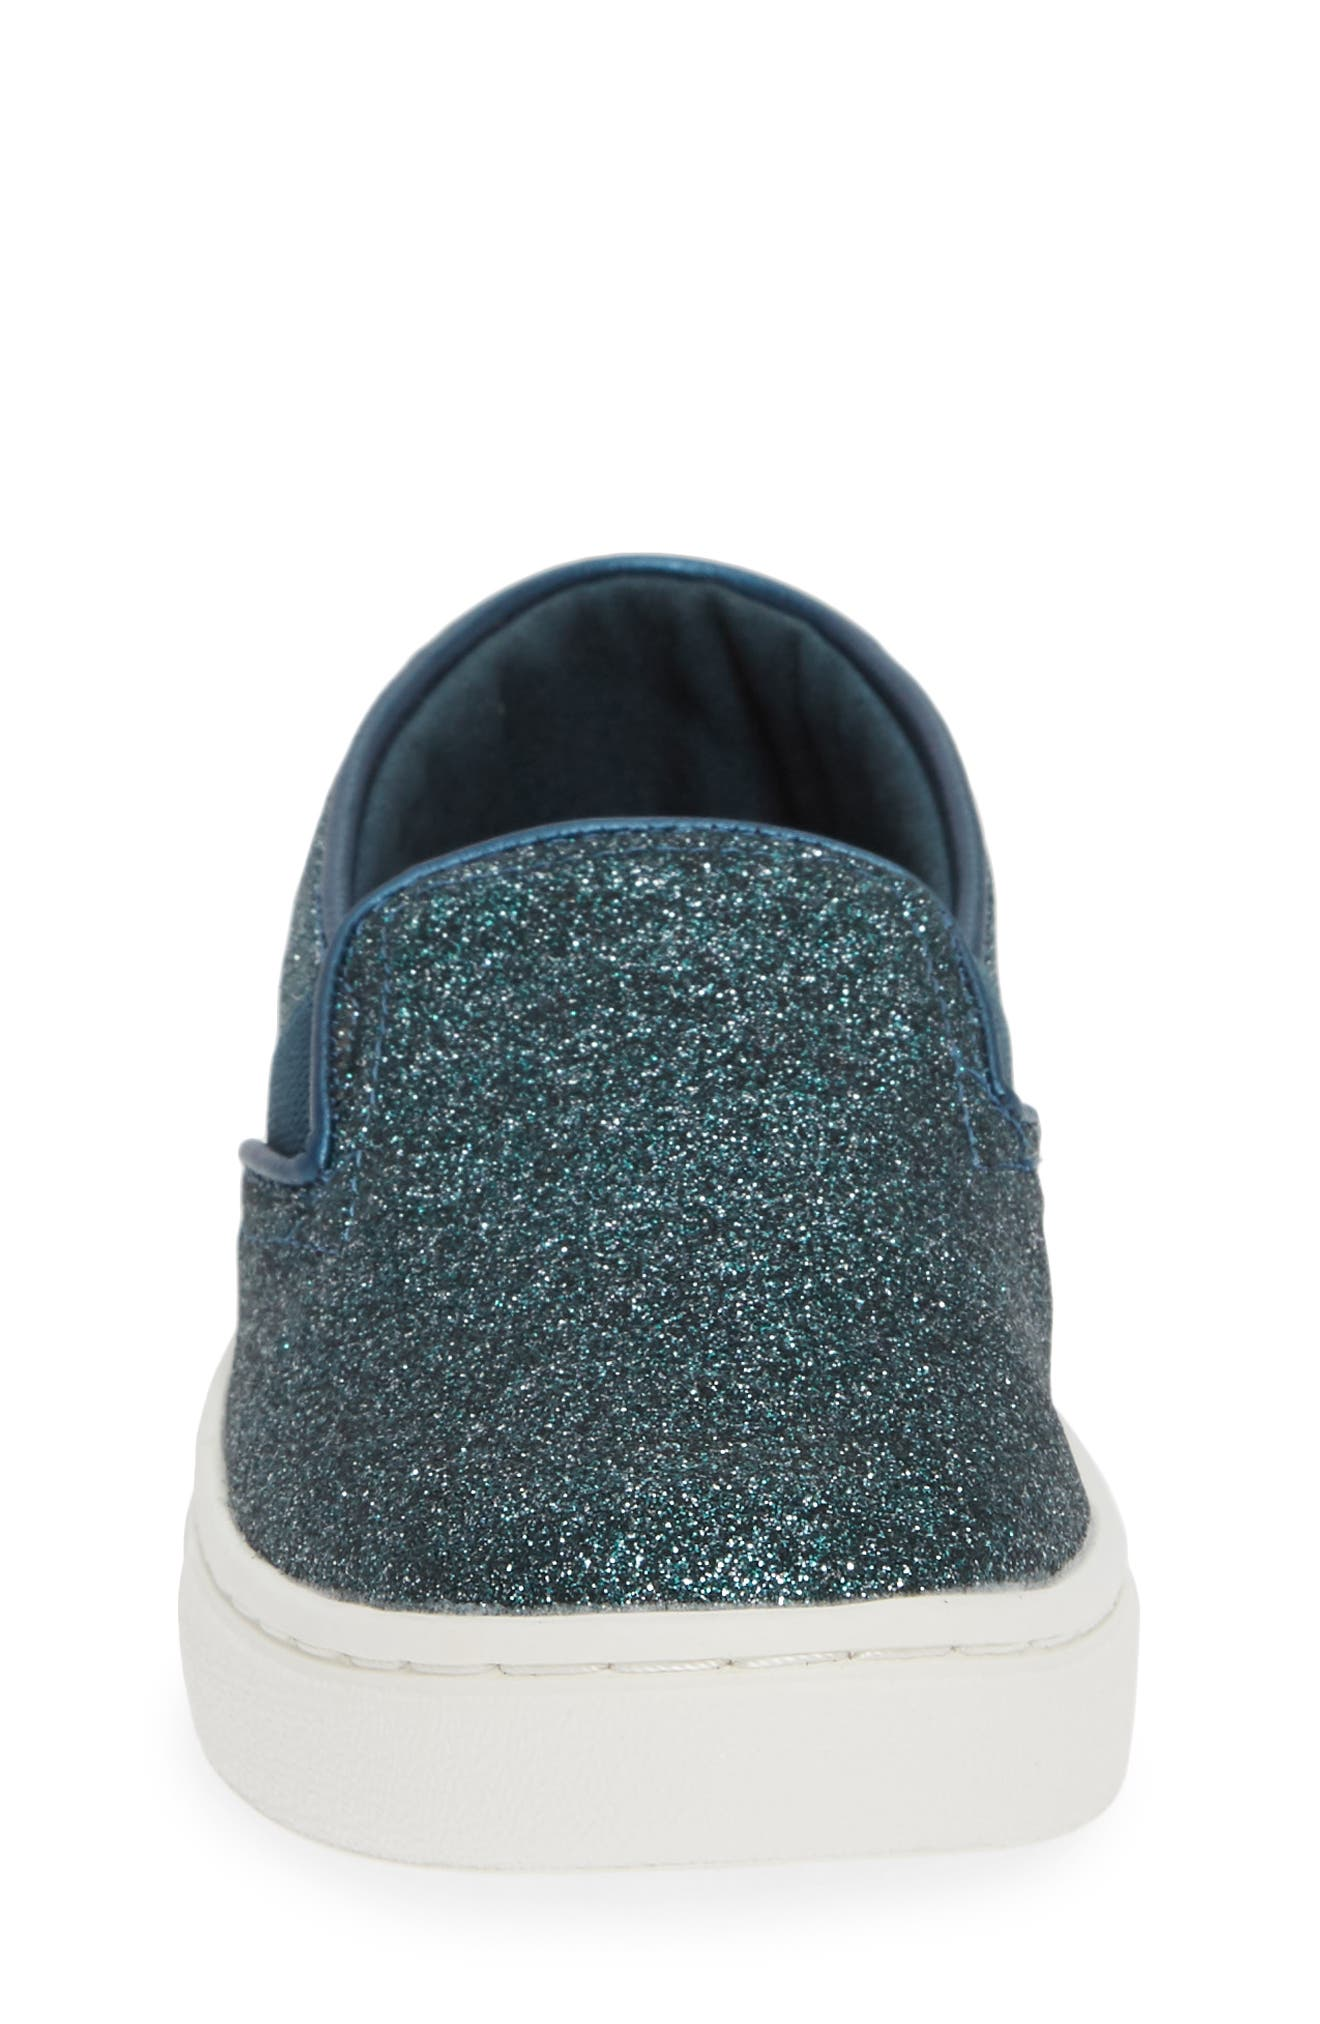 Luca Slip-On Sneaker,                             Alternate thumbnail 4, color,                             ATLANTIC IRIDESCENT/ CORDUROY